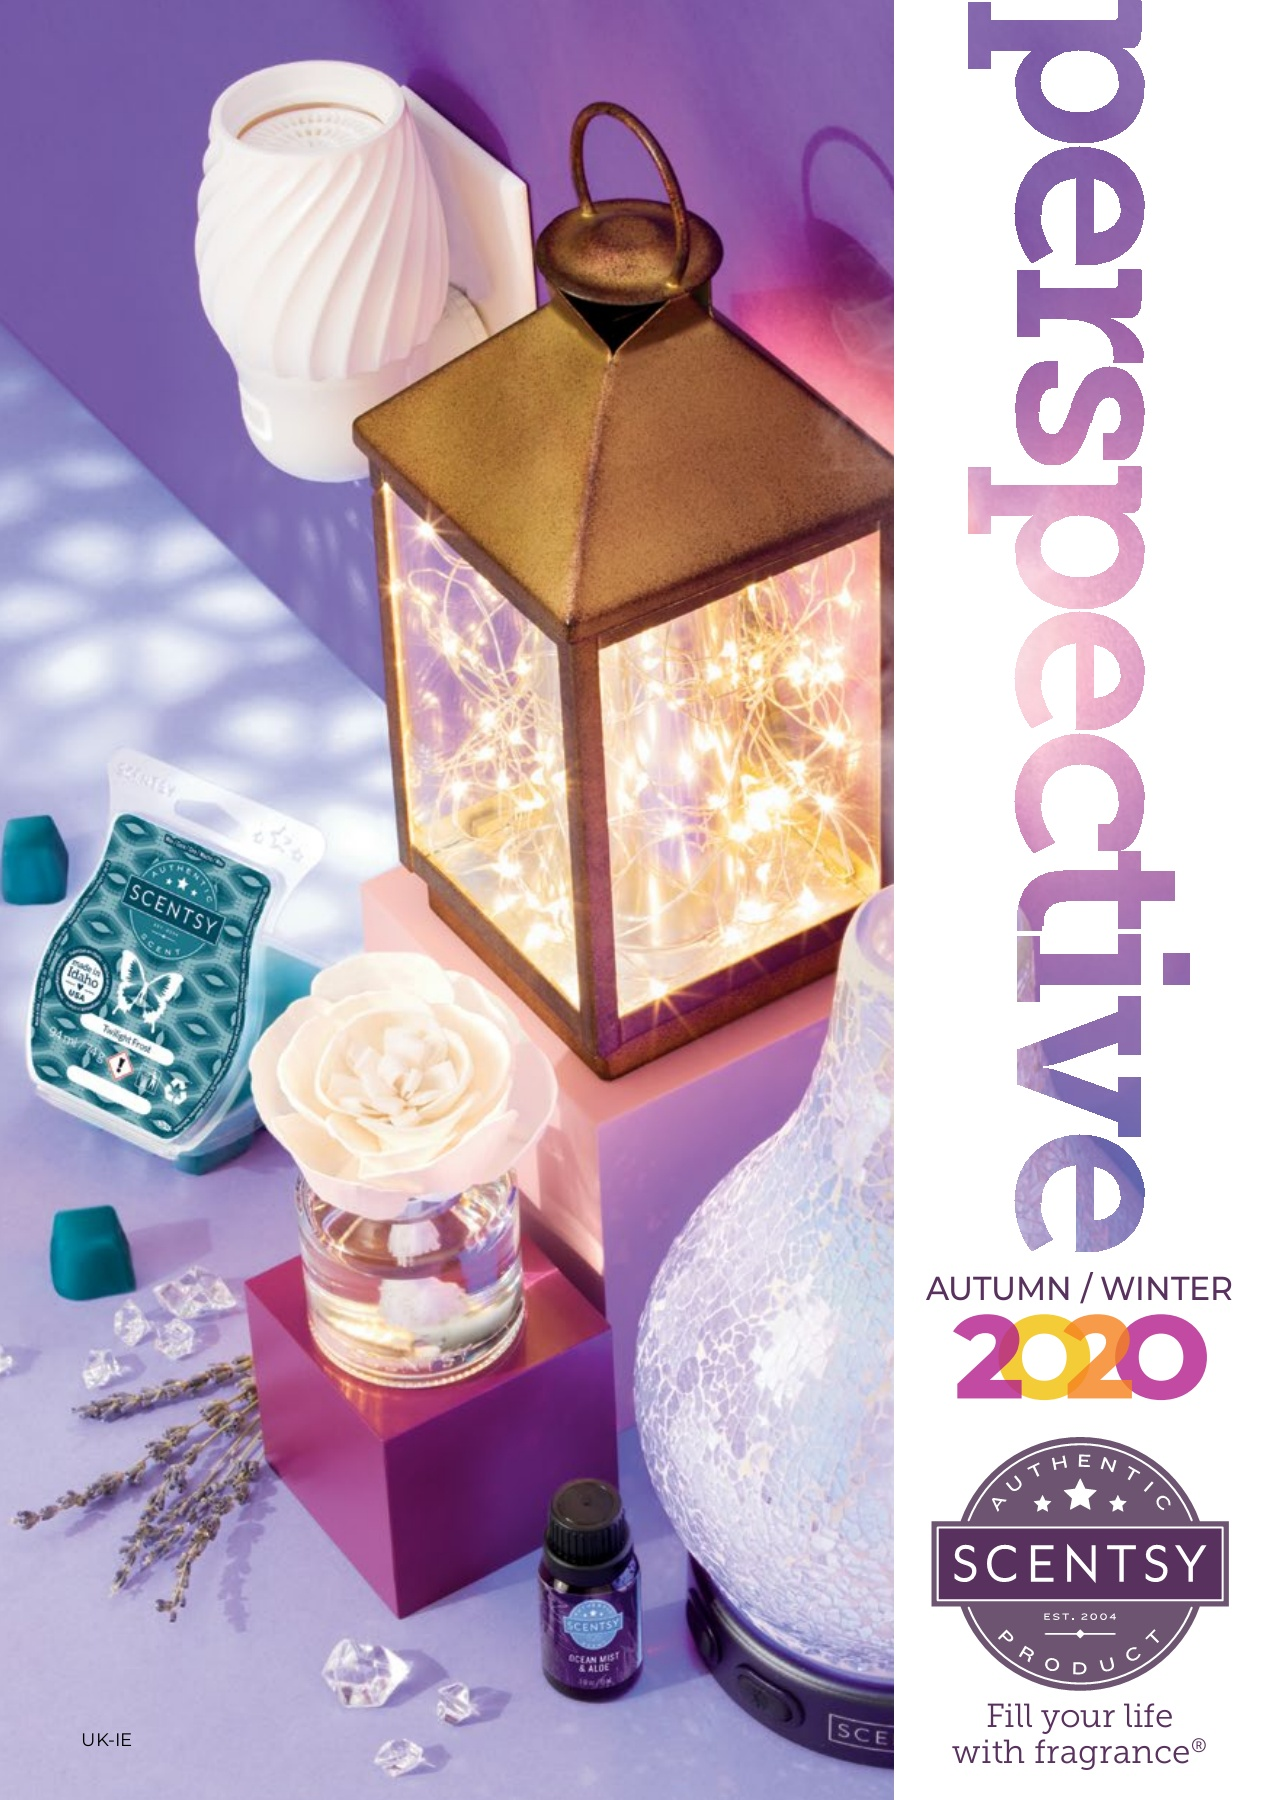 Thesmellylady Scentsy Autumn Winter 2020 Flip Ebook Pages 1 50 Anyflip Anyflip